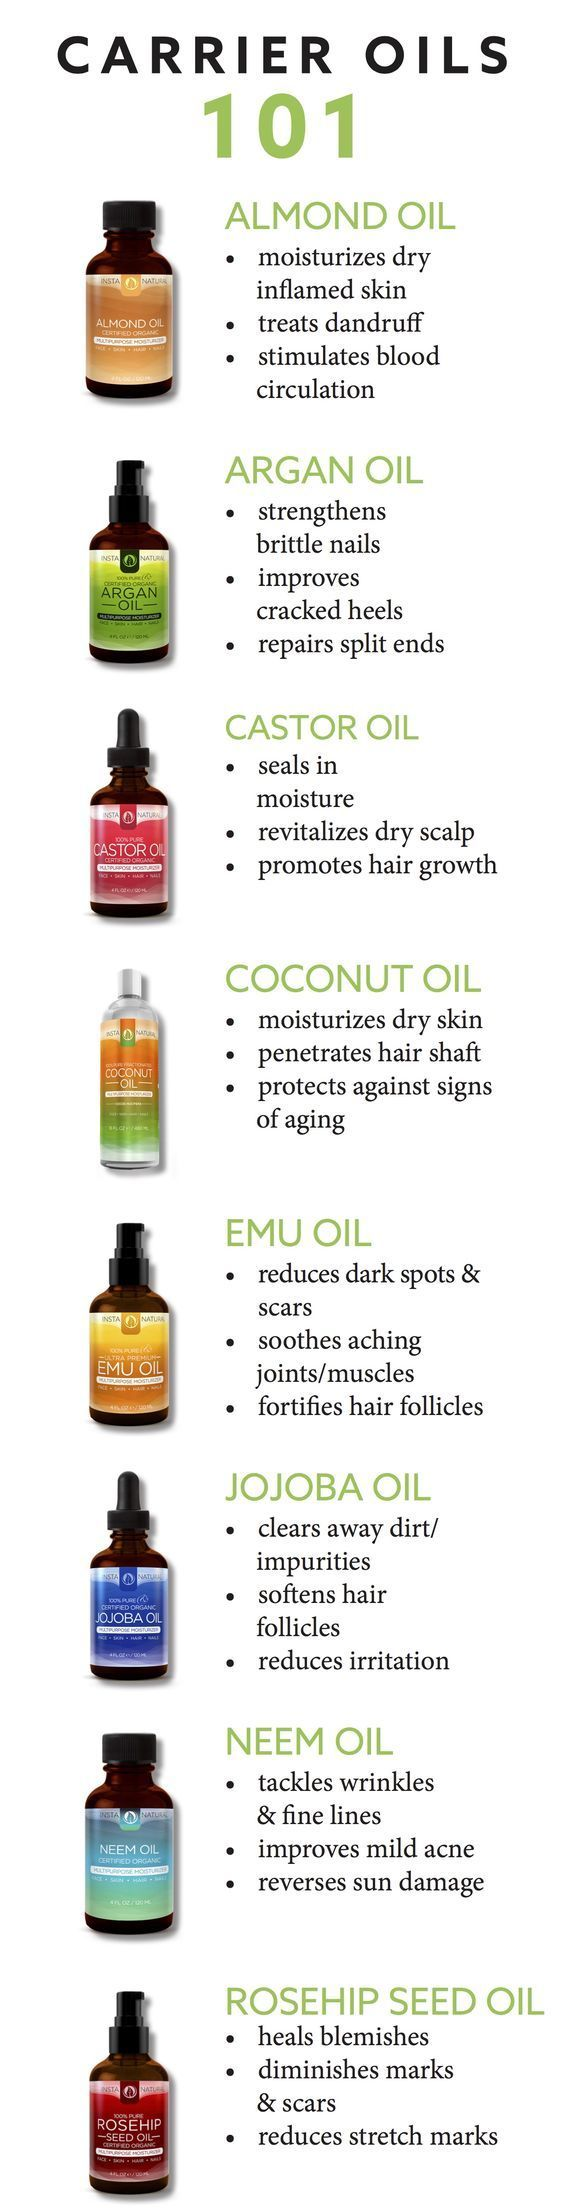 Discover the benefits of Carrier Oils! Pinned for you by organicaromas.com